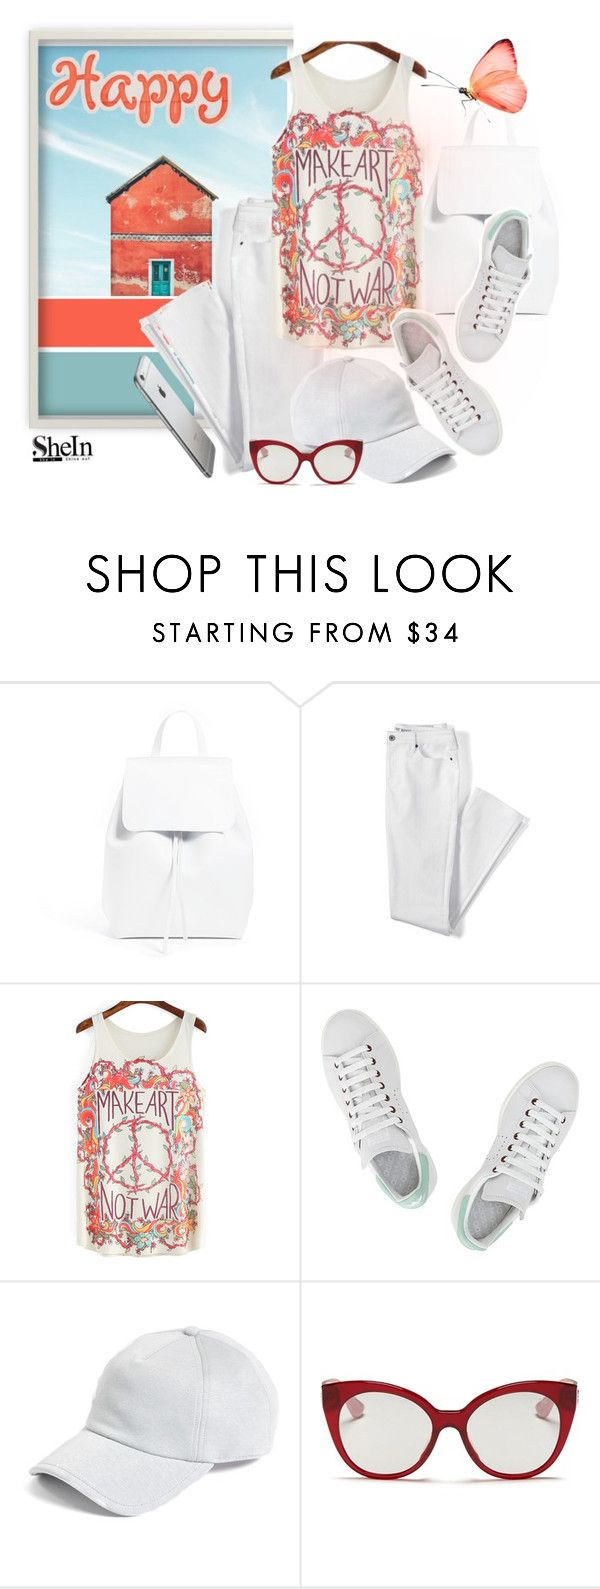 """happy"" by sandevapetq ❤ liked on Polyvore featuring Mansur Gavriel, Lands' End, adidas, rag & bone and Miu Miu"